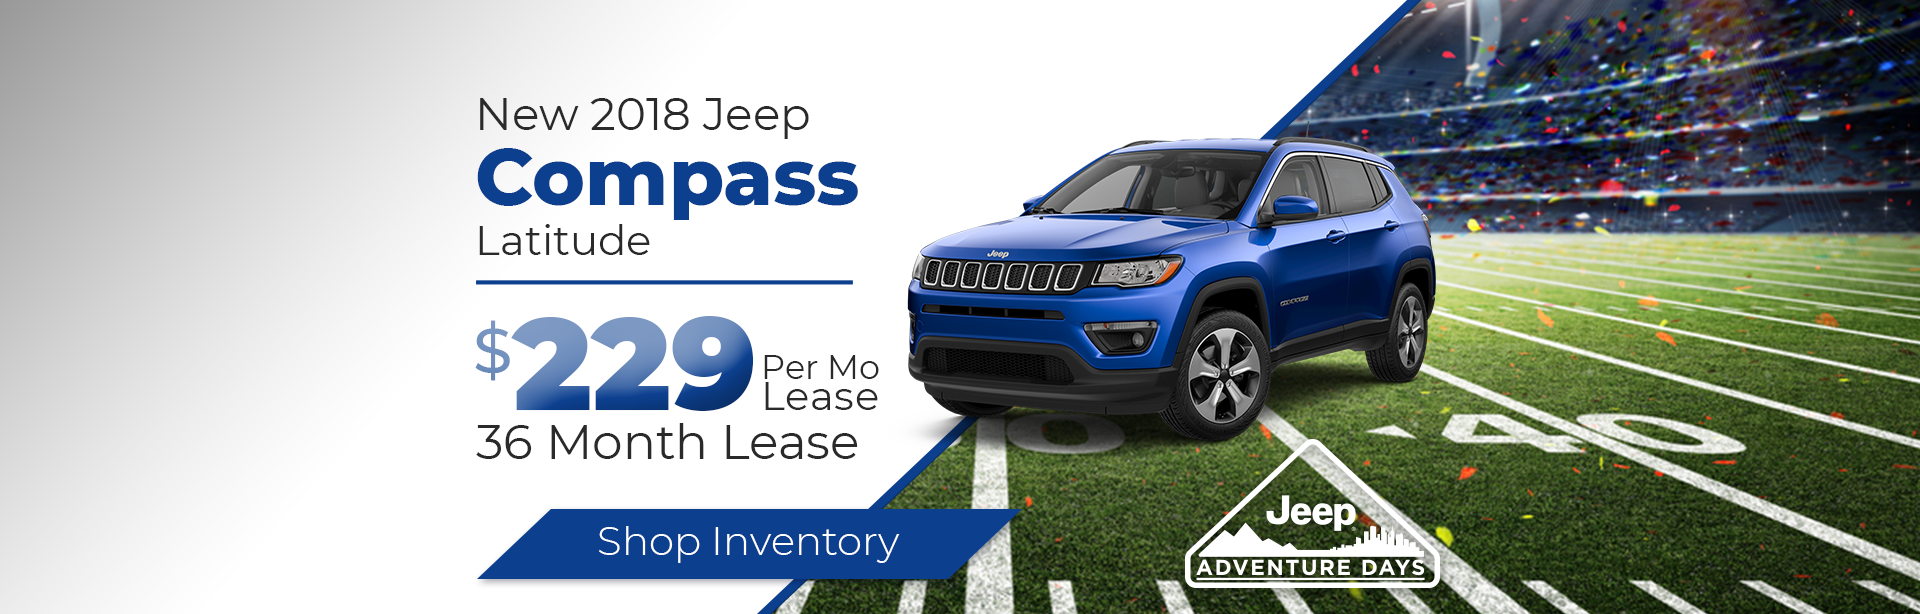 2018 Jeep Compass Lease Special Near Crawfordsville, Indiana